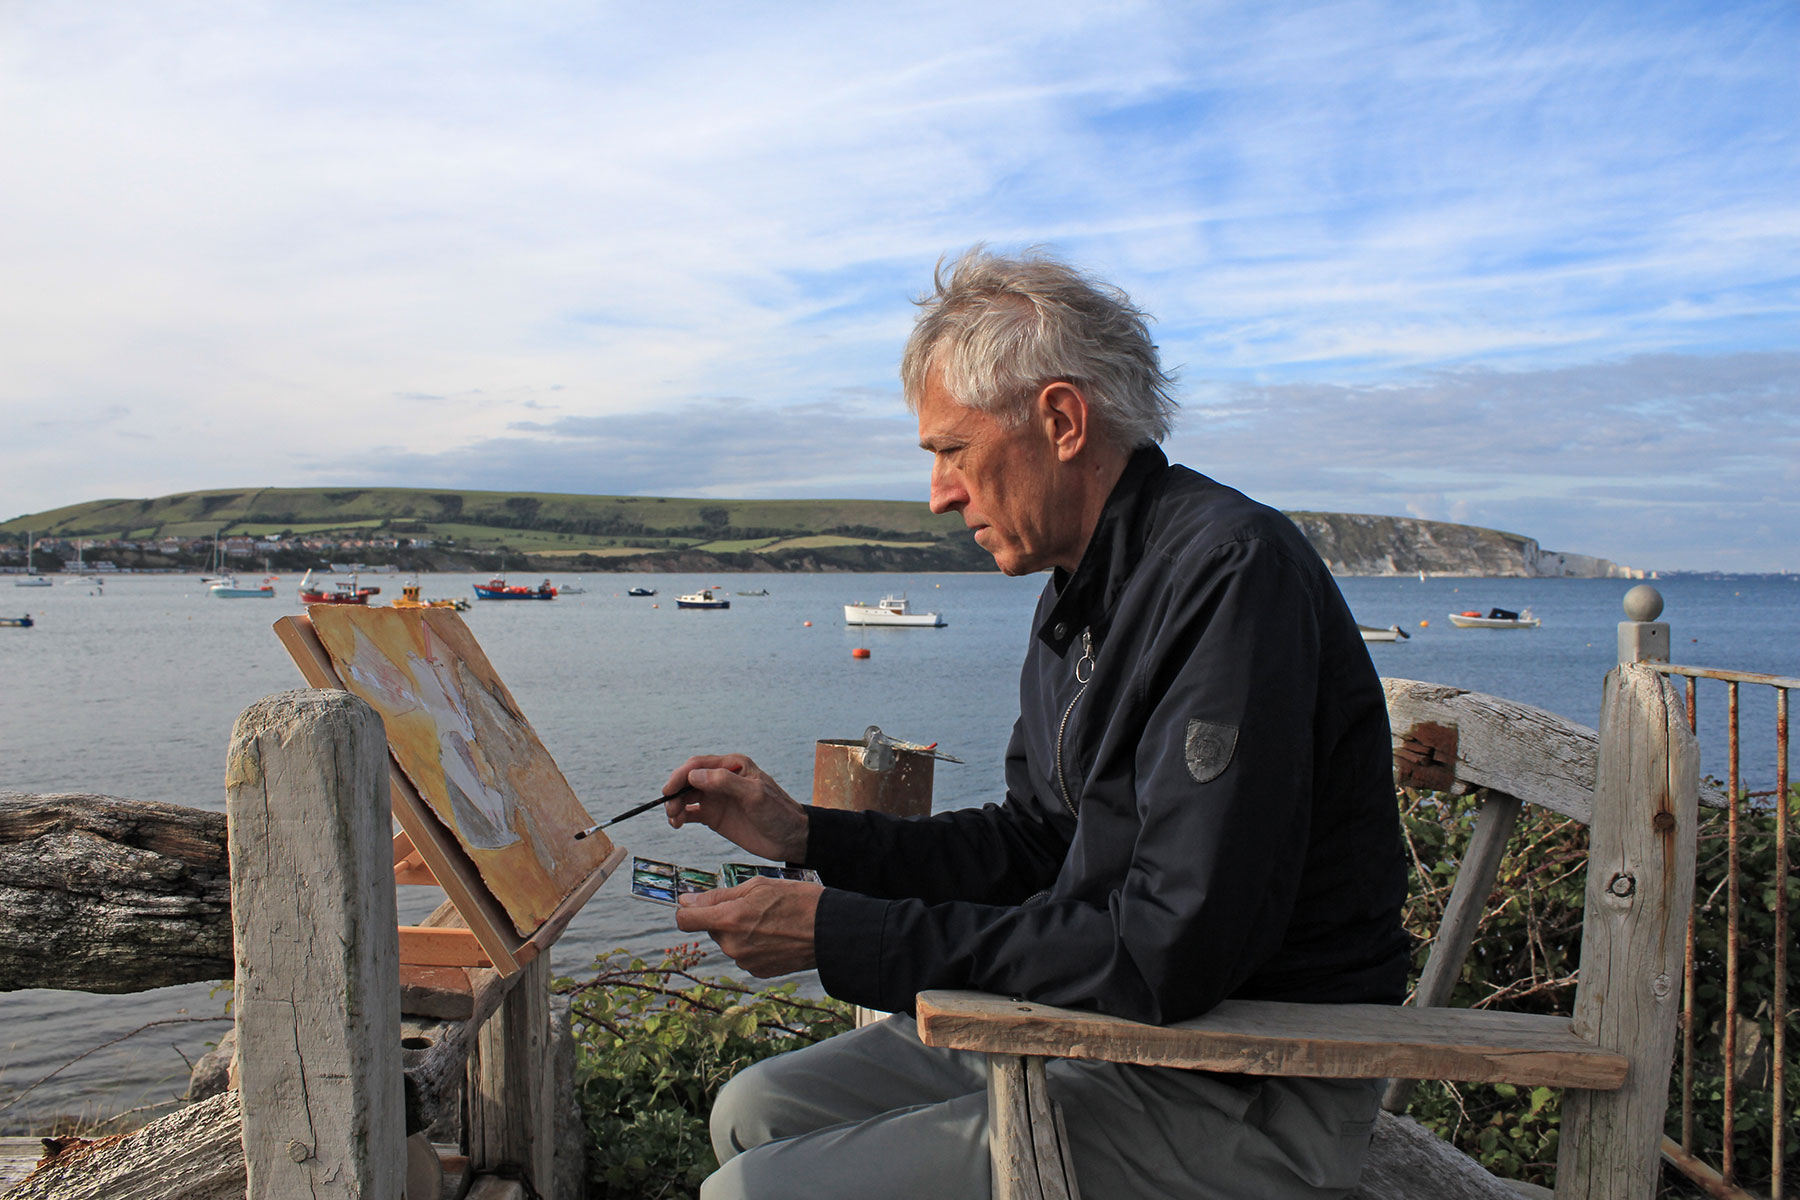 Jeremy Gardiner painting plein air with brush and watercolours, Ballard Point in the background